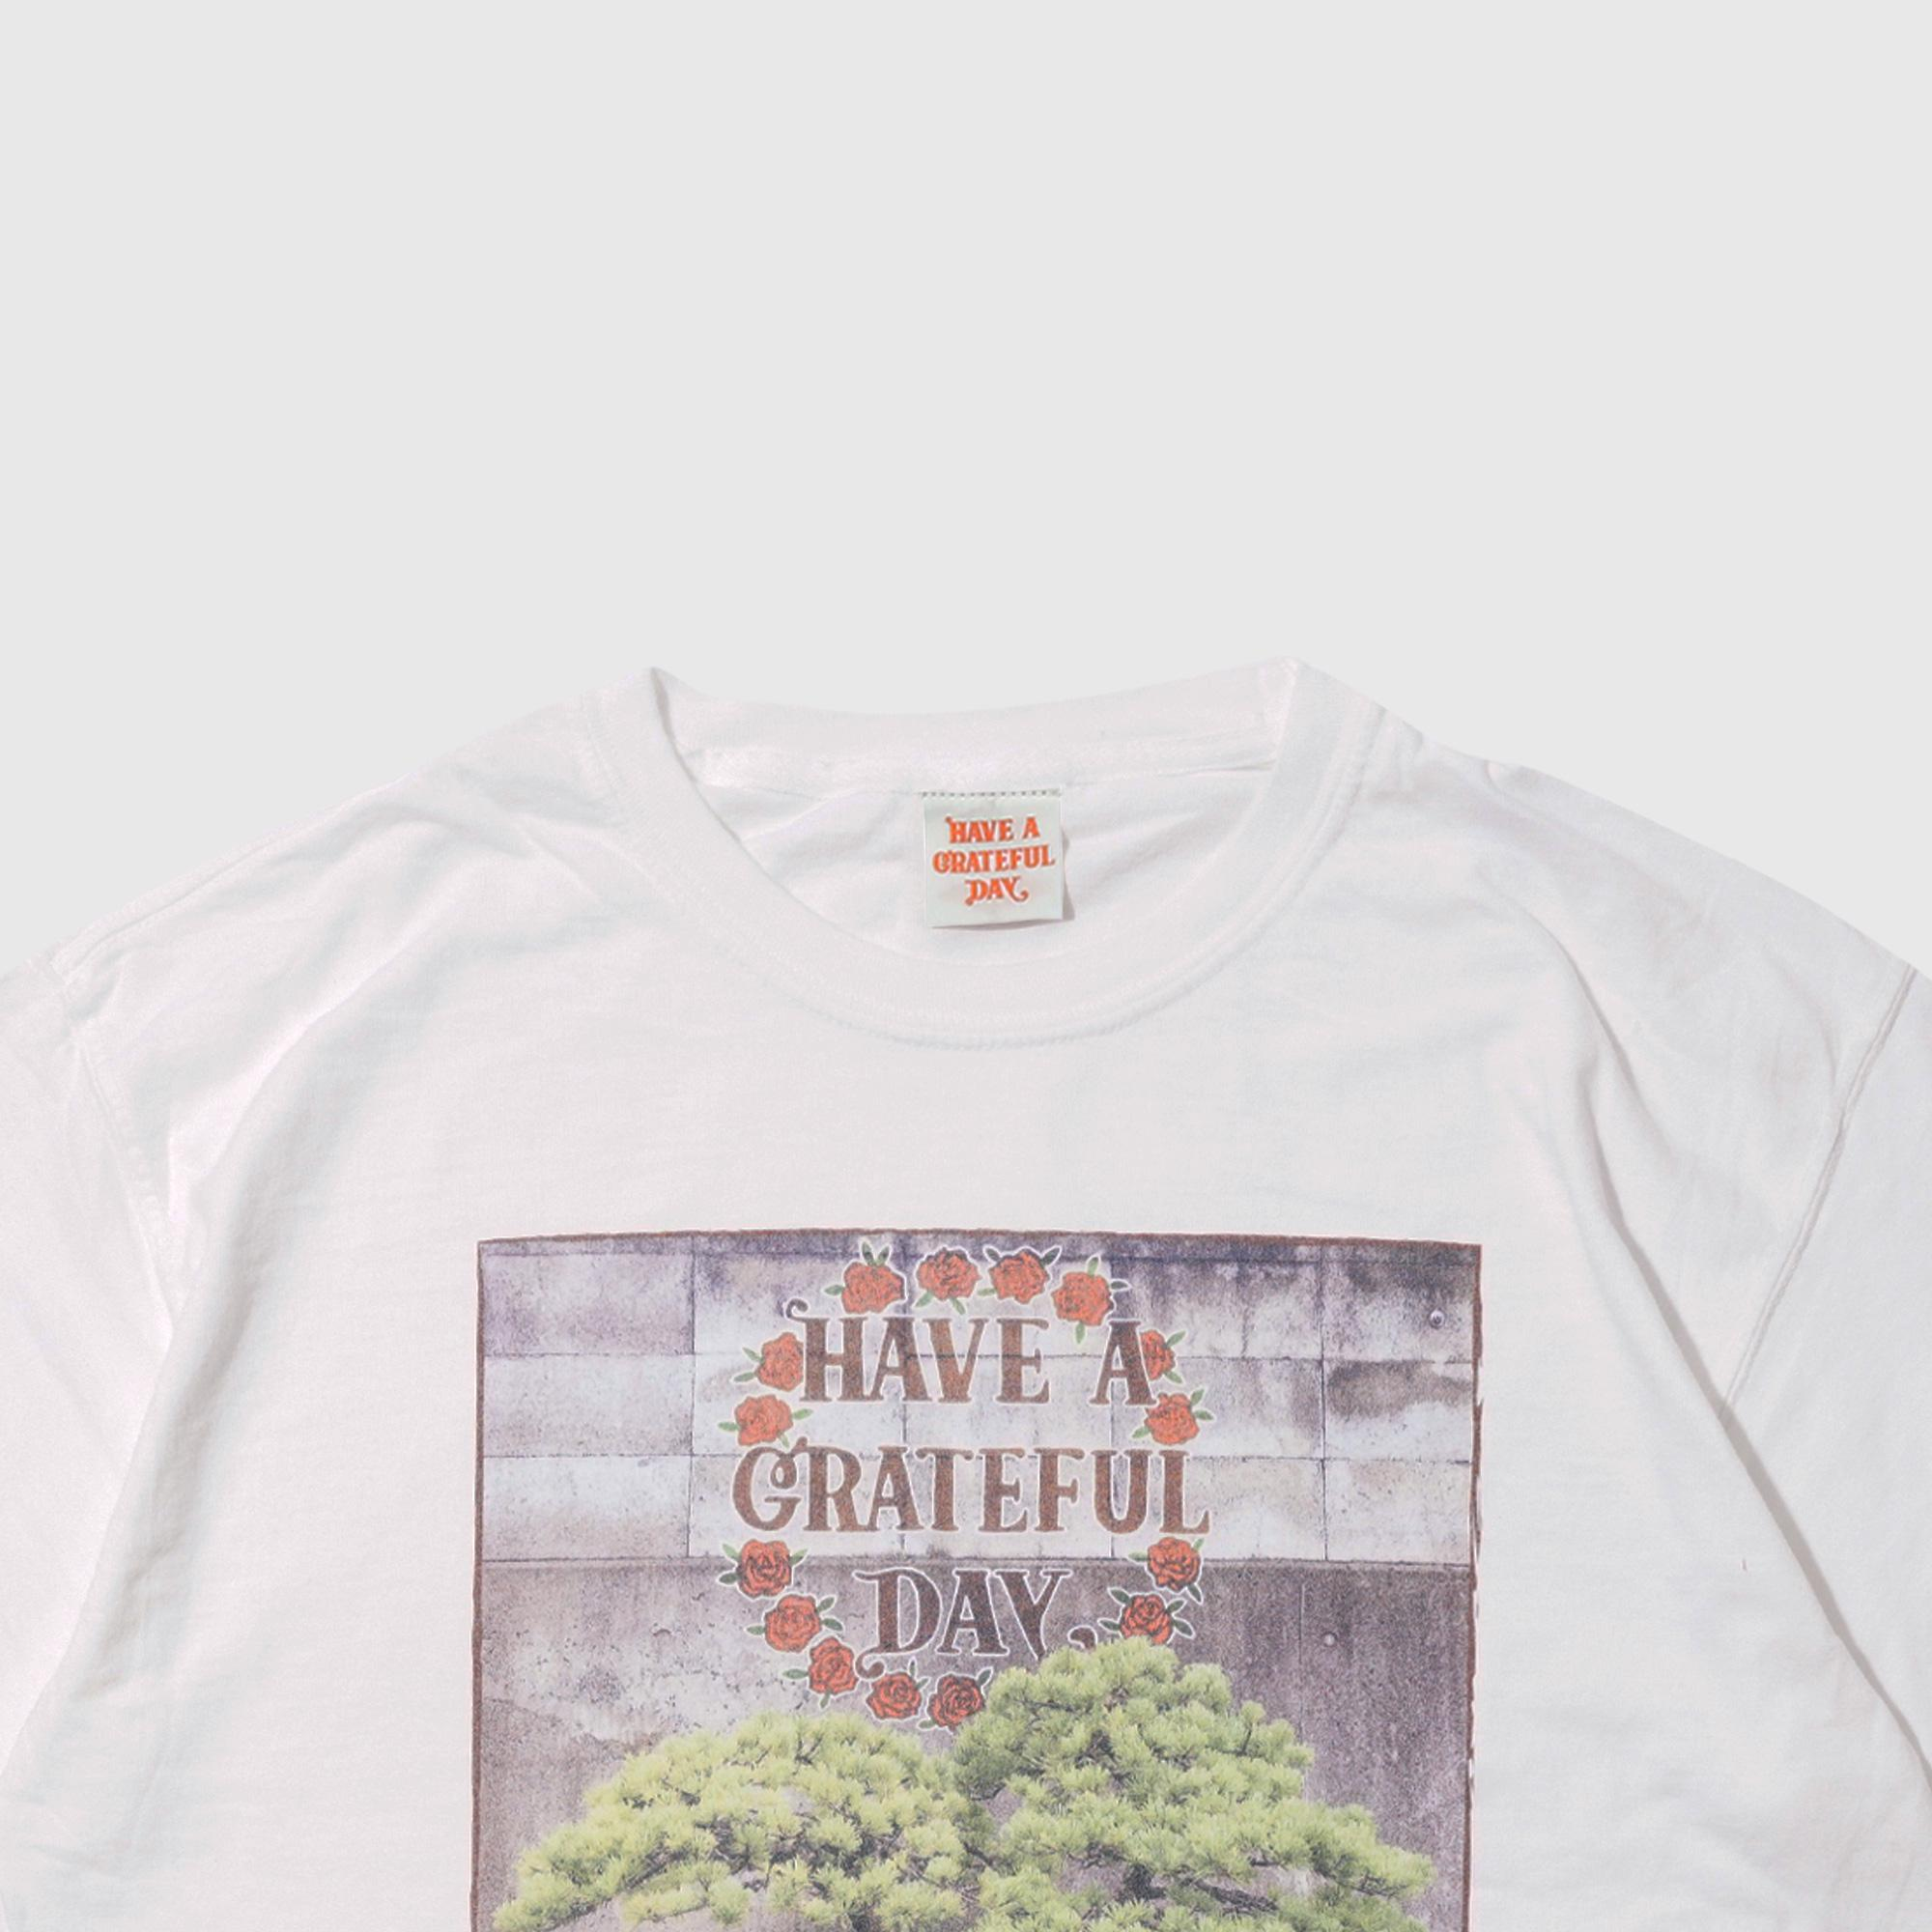 YH×GRATEFUL DAY T-SHIRT -GRAFFITI